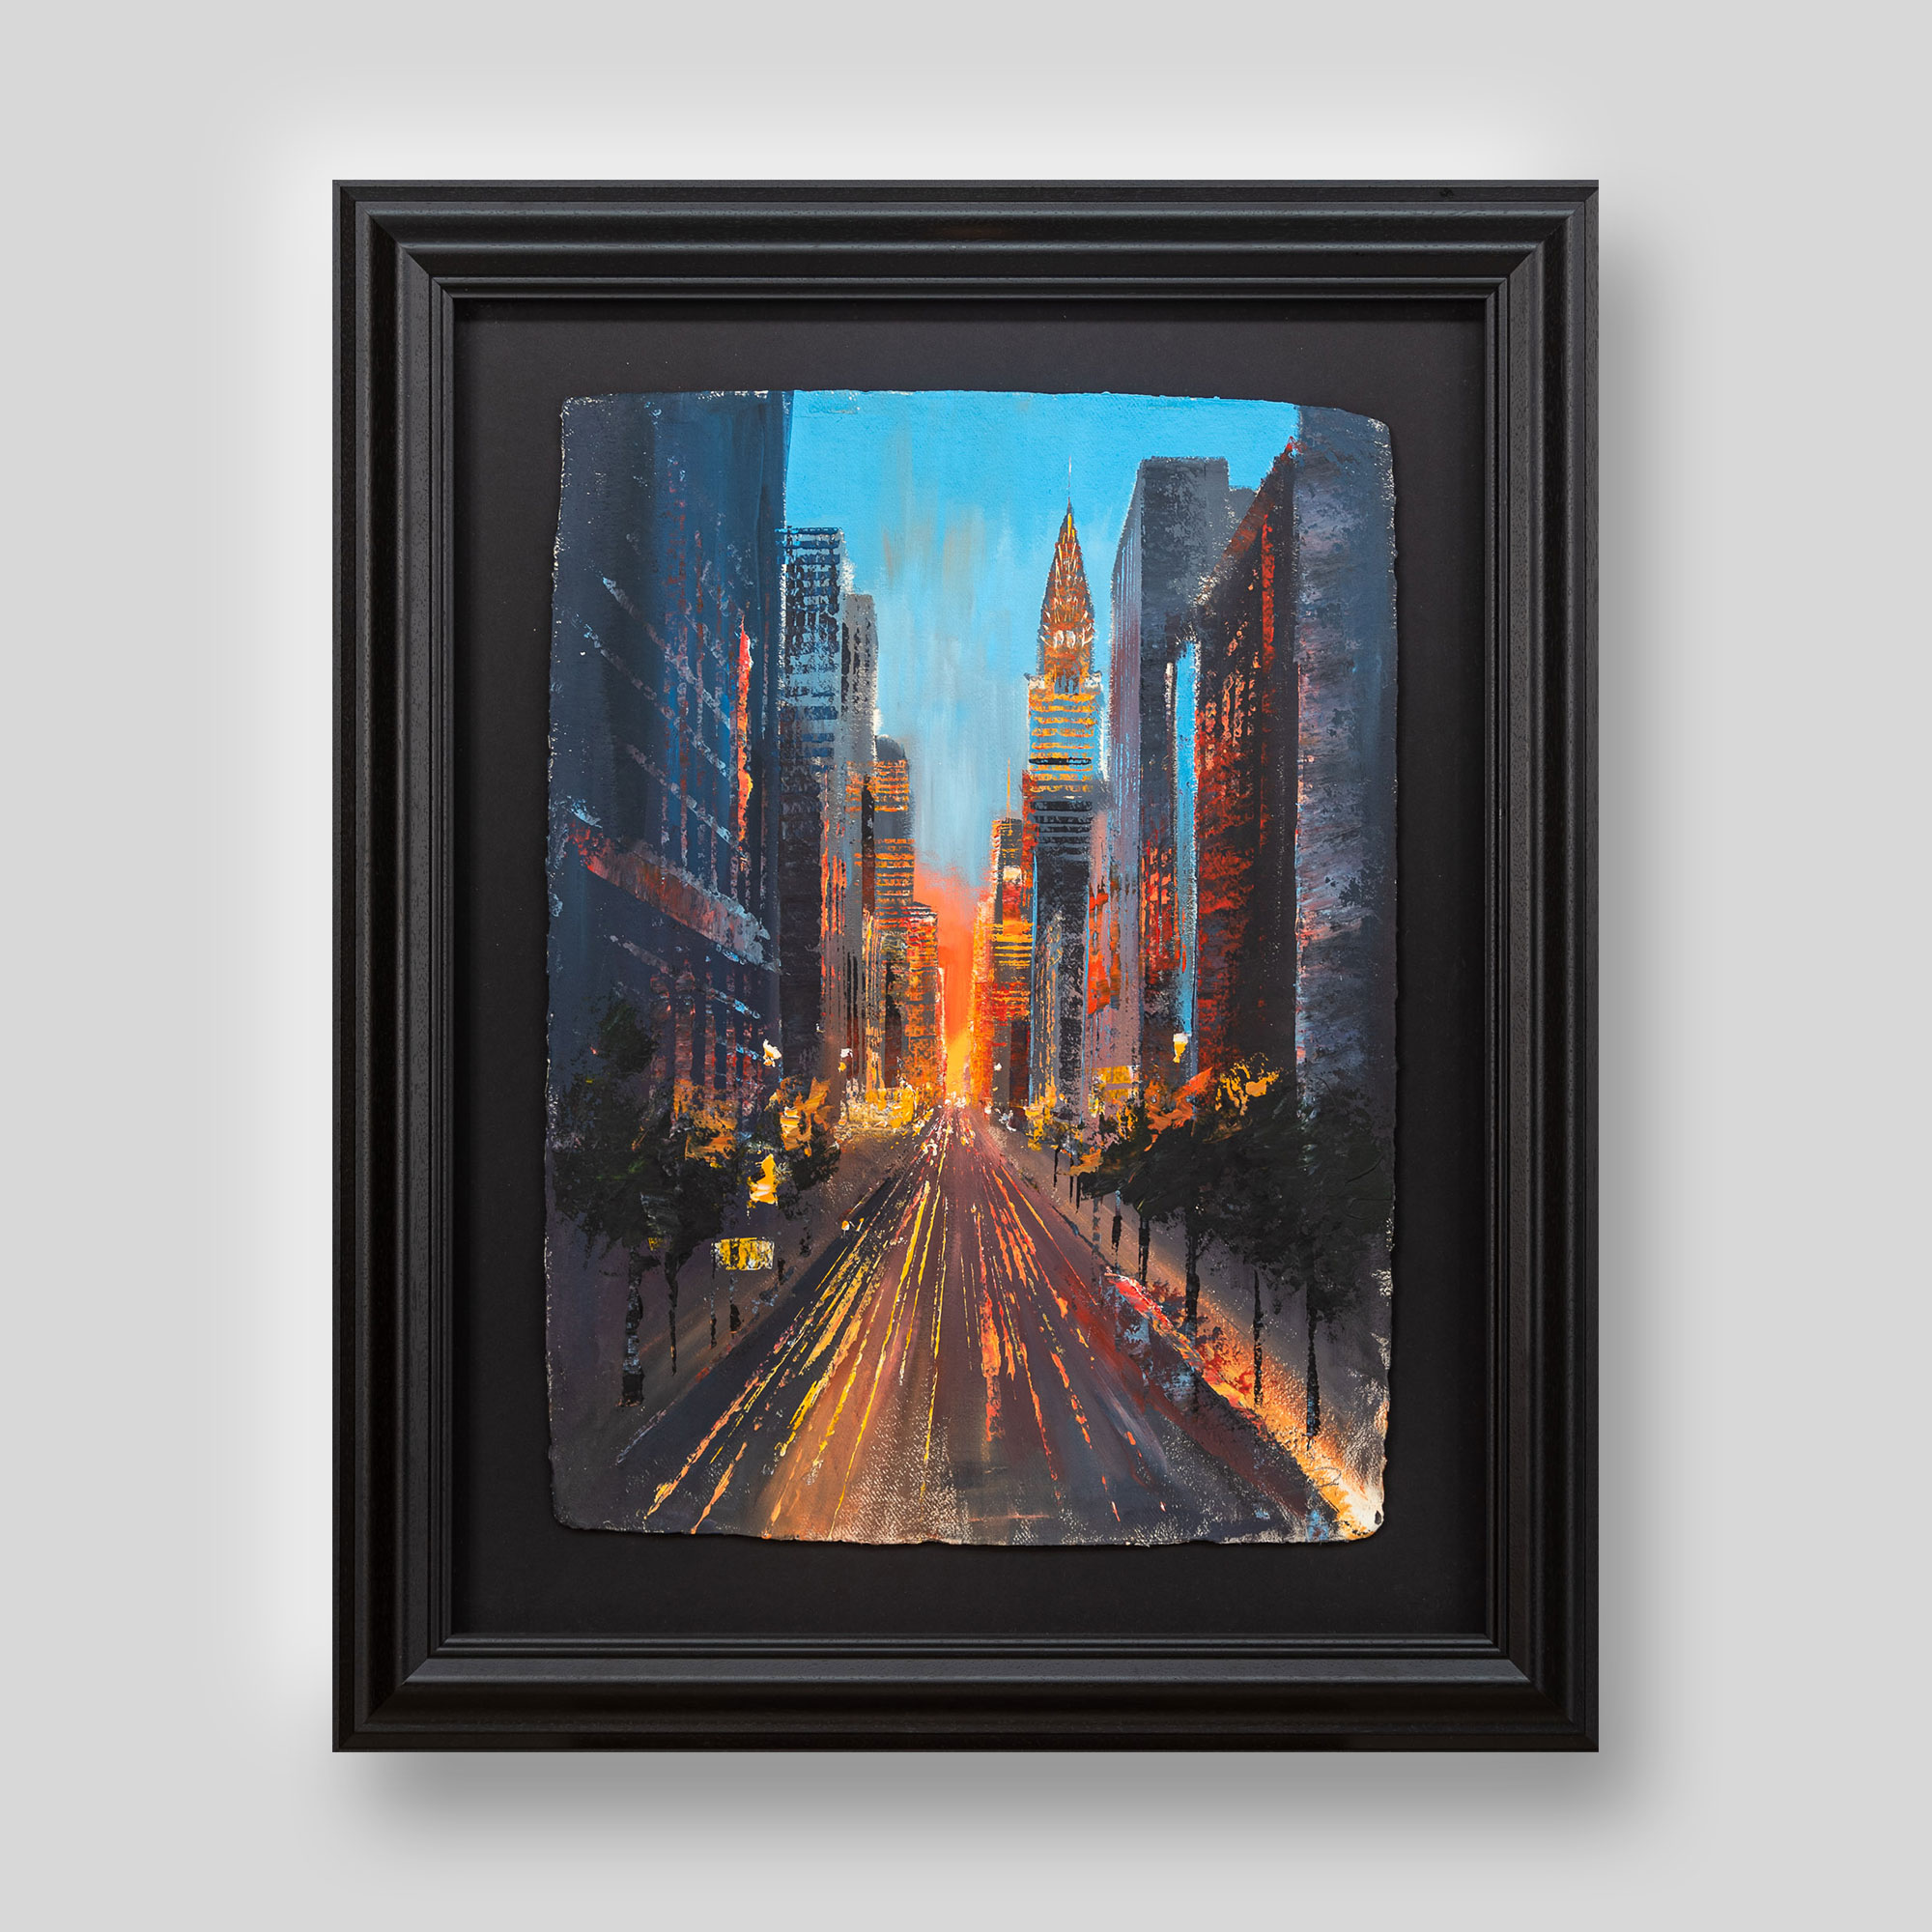 Skyscraper Central - Original Chsysler New York Sunset Painting by UK Contemporary Artist Paul Kenton, from the New York Collection